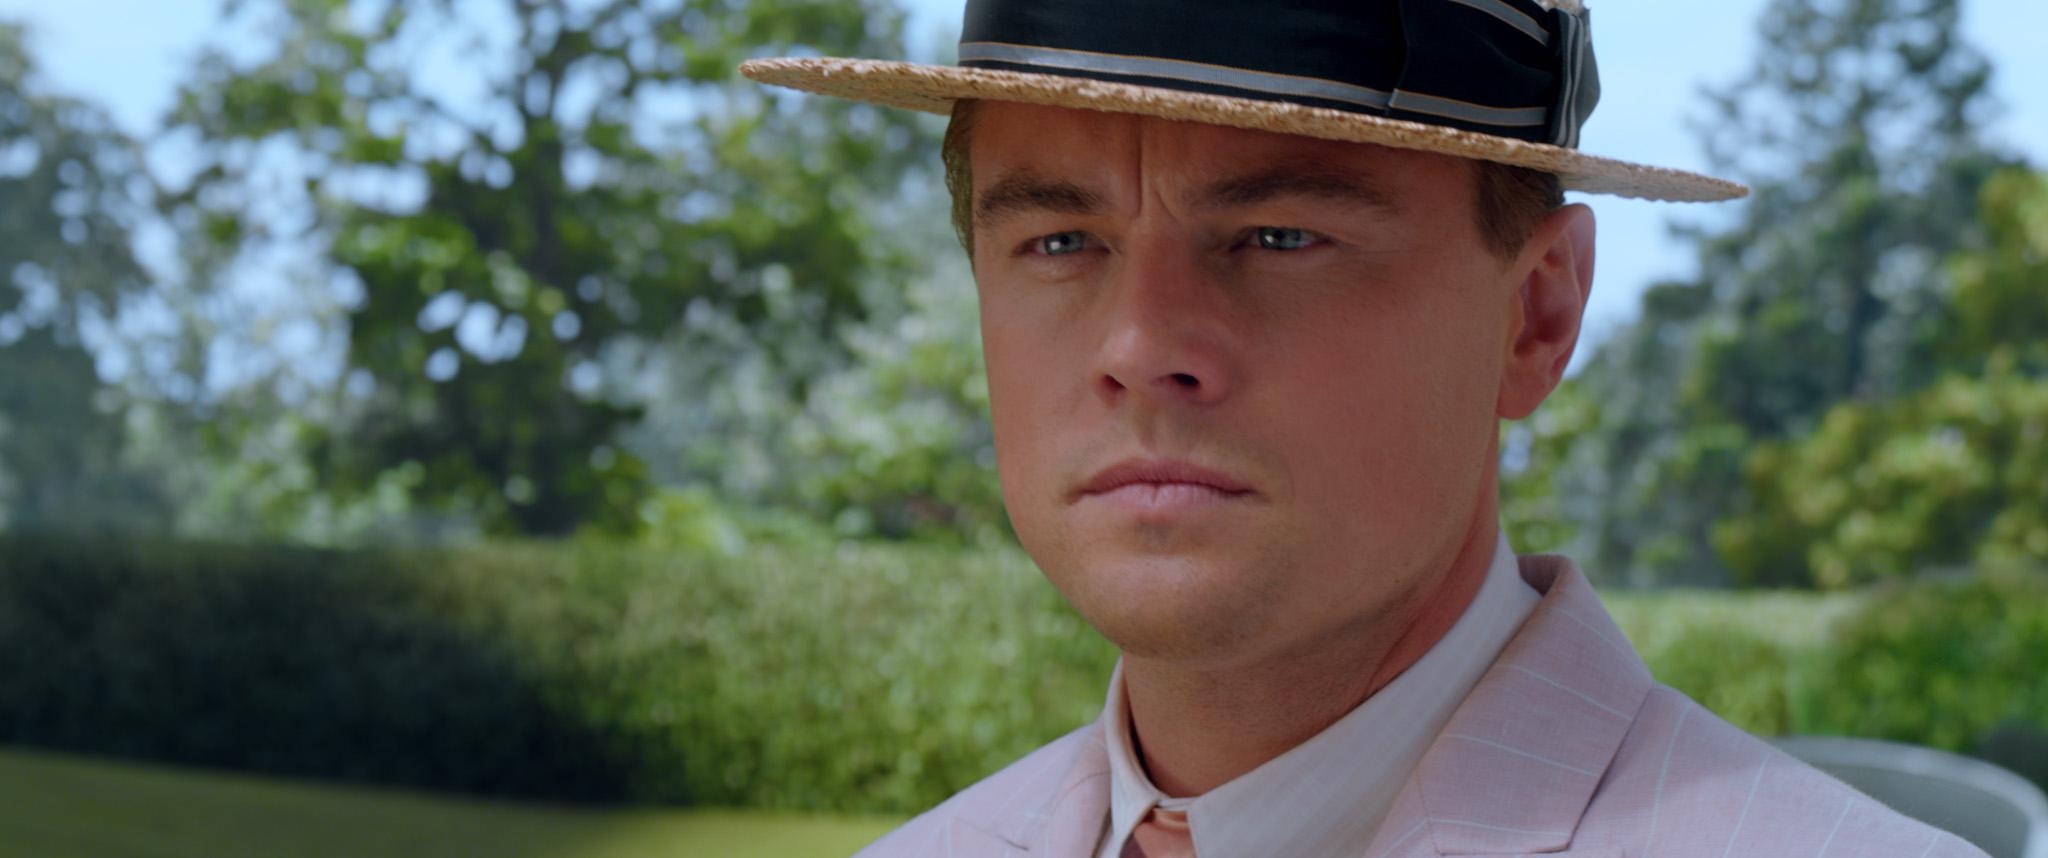 gatsby as a tragic hero essay Jay gatsby as tragic hero of fitzgerald's the great gatsby according to aristotle, there are a number of characteristics that identify a tragic hero: he must cause his own.